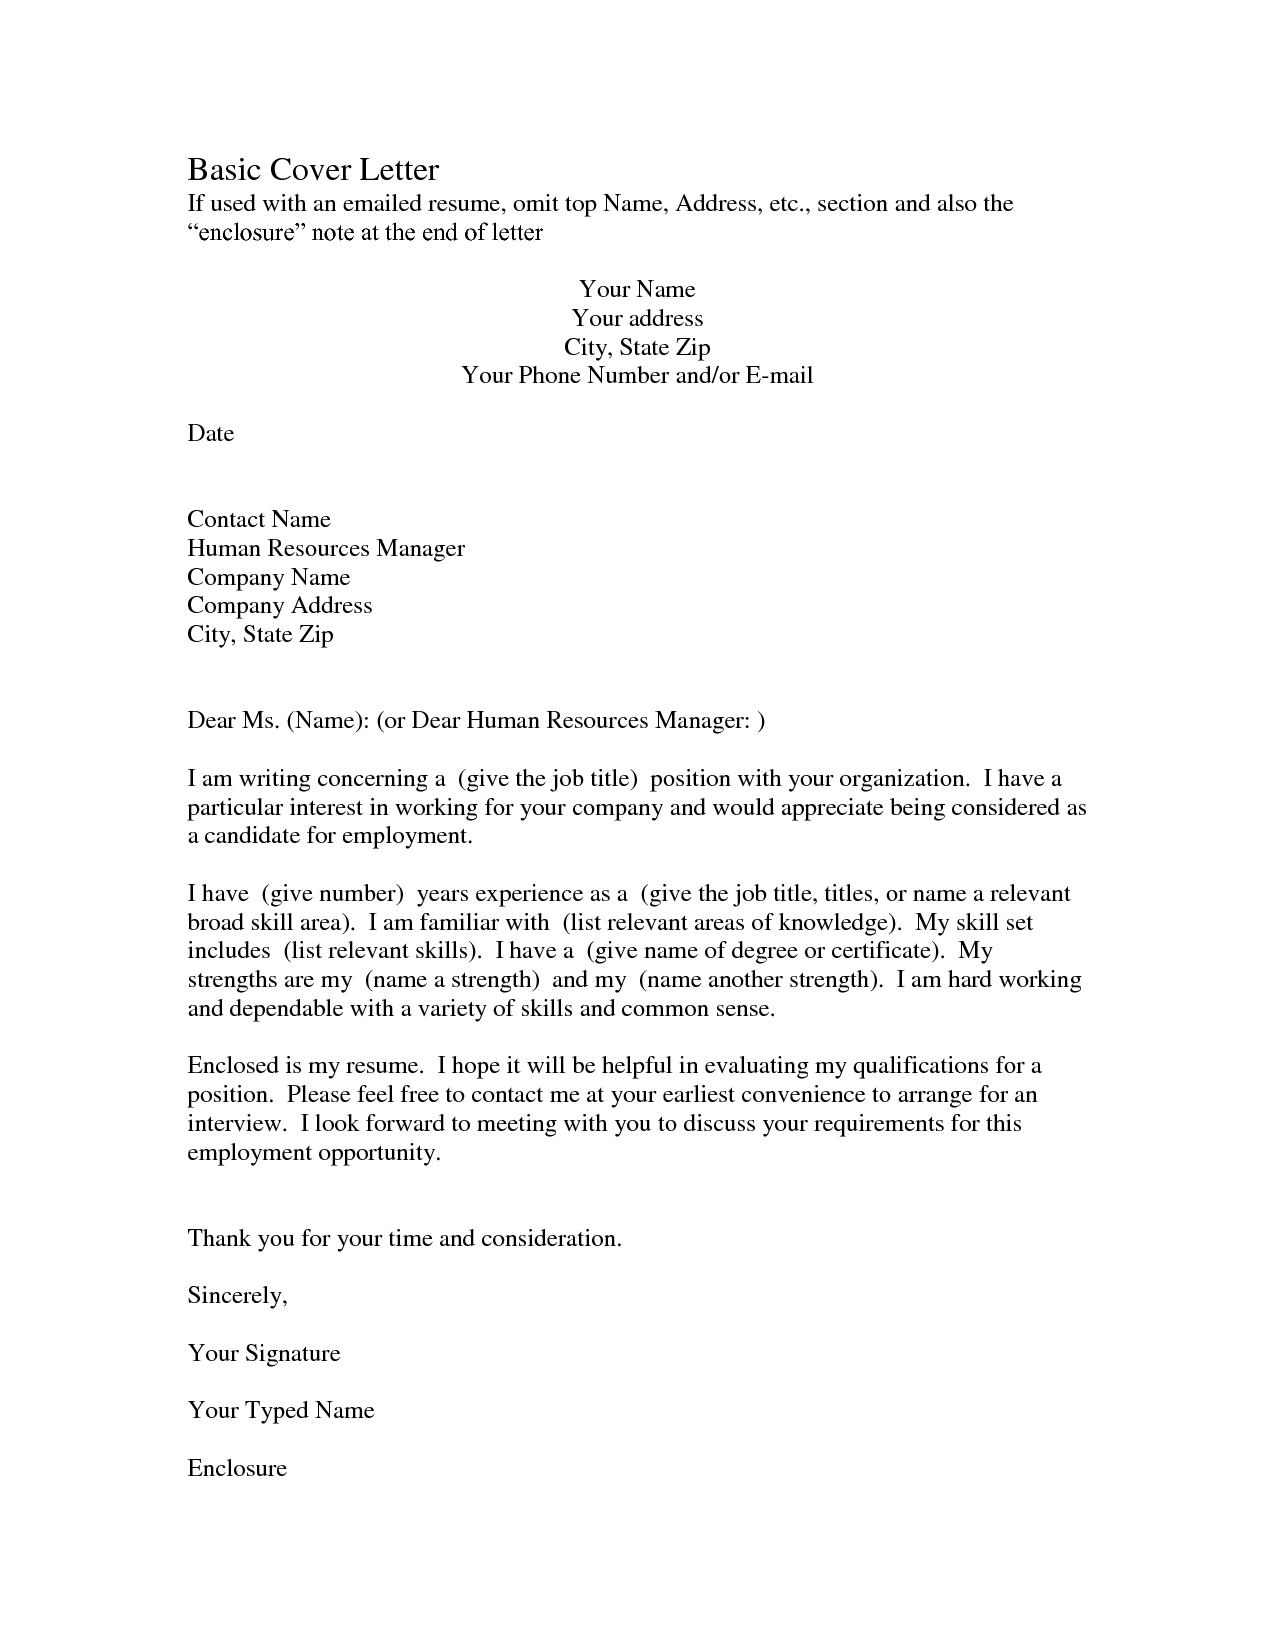 Employer Doesn T Offer Health Insurance Letter Template Collection